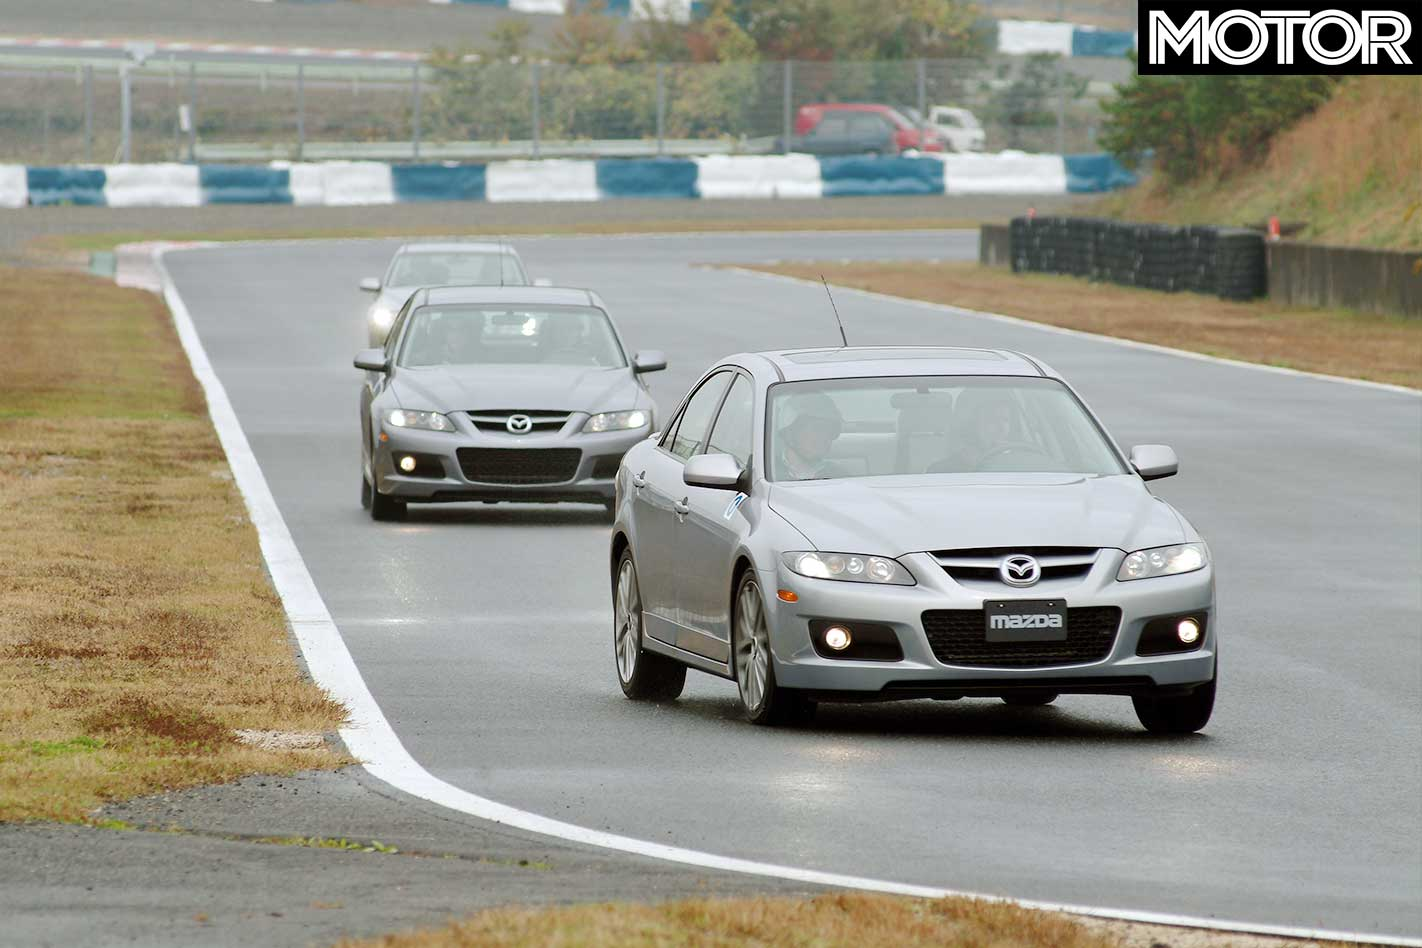 The Track Weu0027ve Been Let Loose On Is The Tanaka International Circuit At  Aida. Built In 1990 And Active As A Track From 1992, TI Aida Played Host To  Two ...